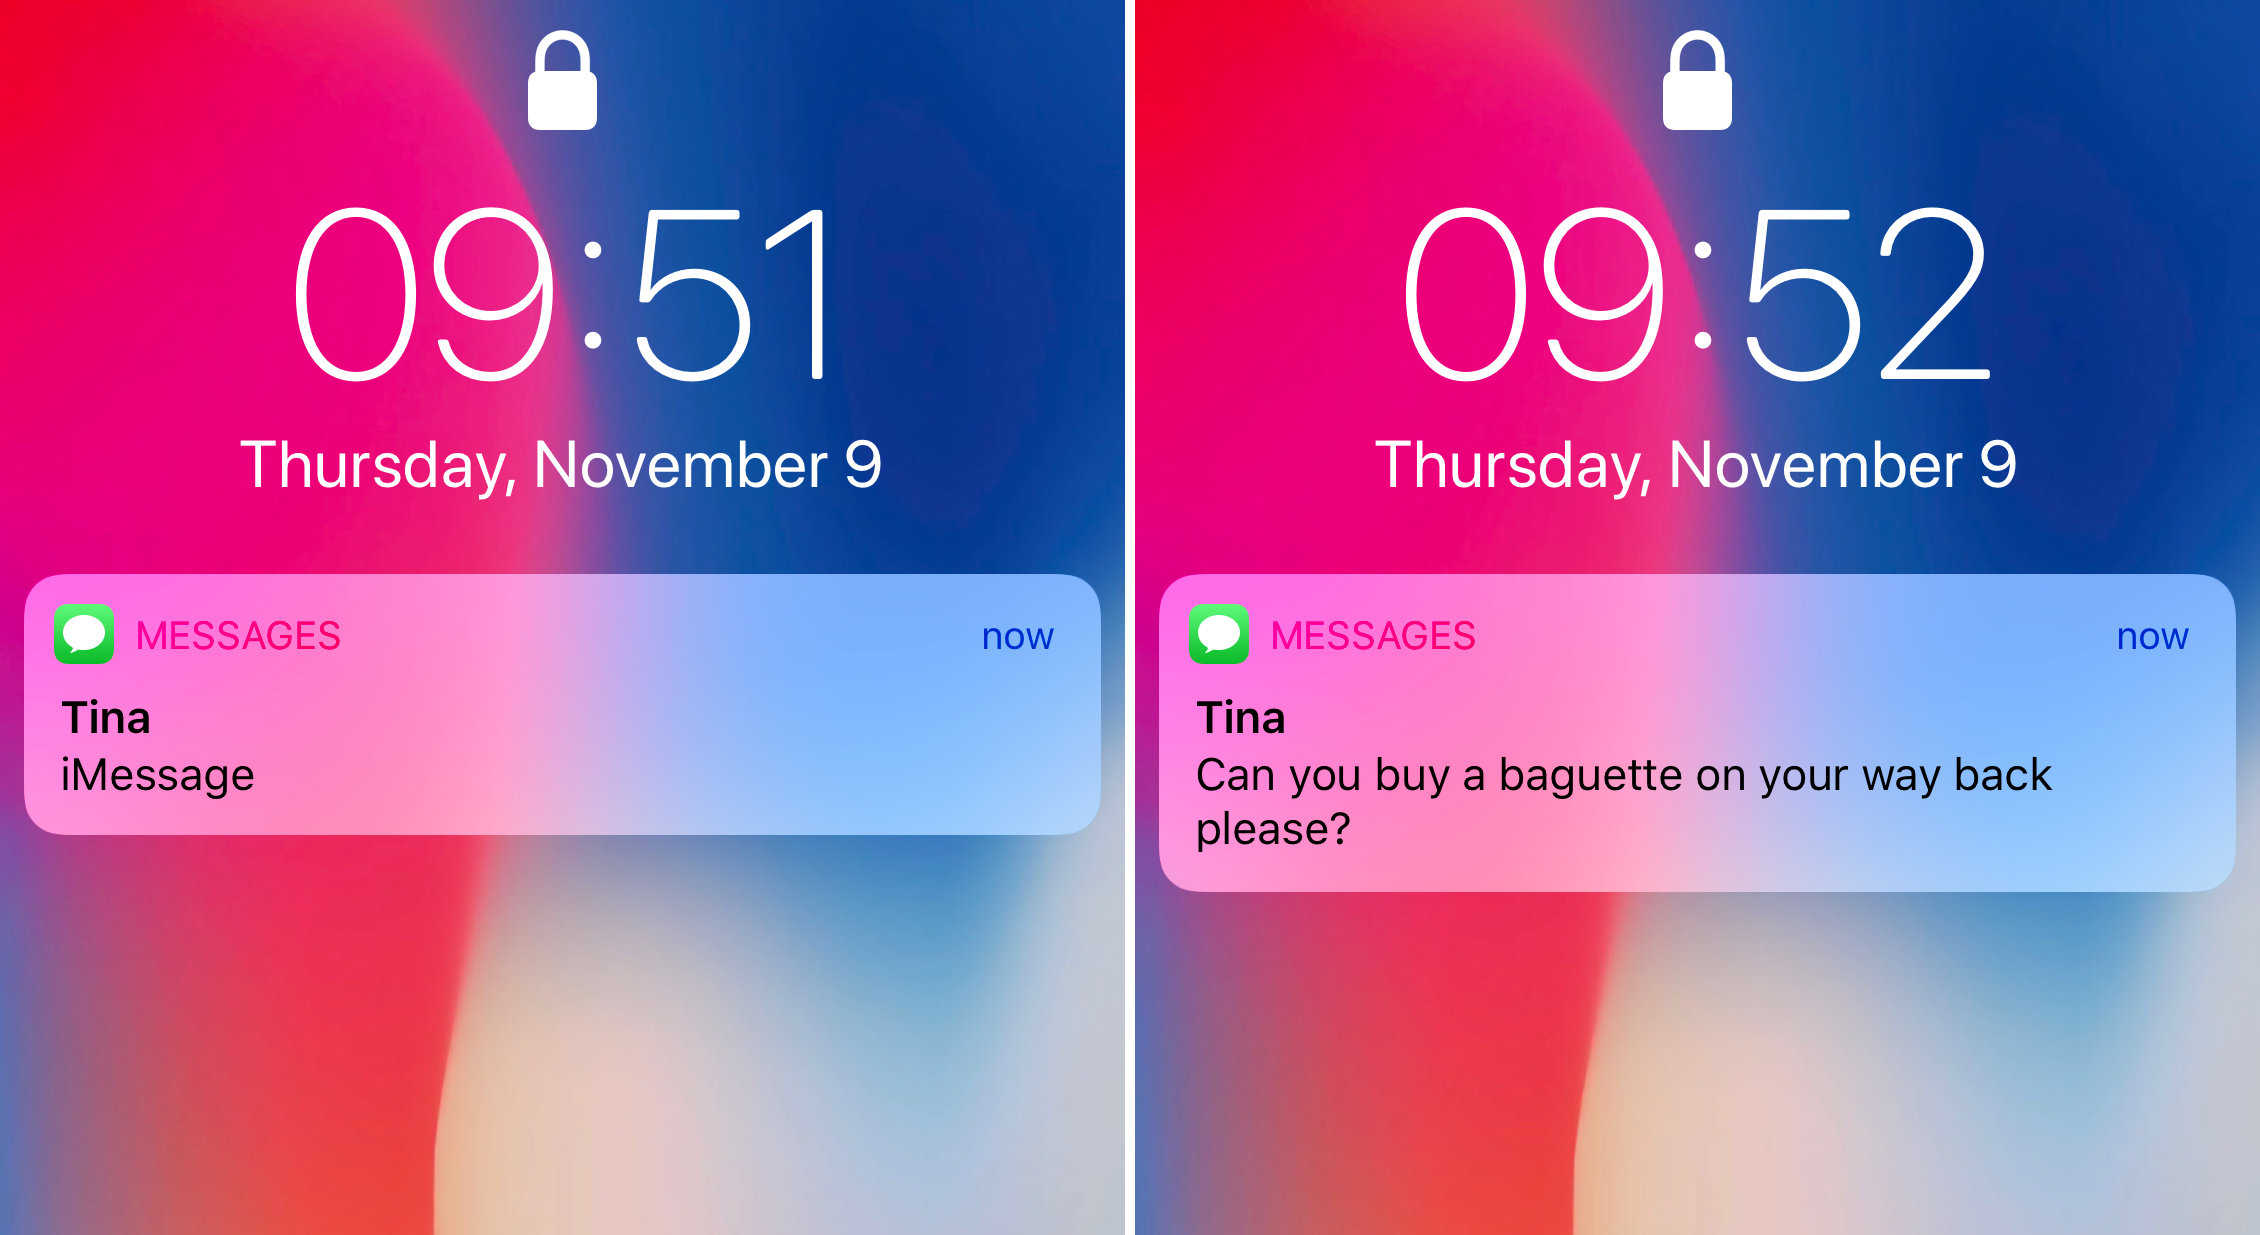 notification-preview-on-lock-screen.png